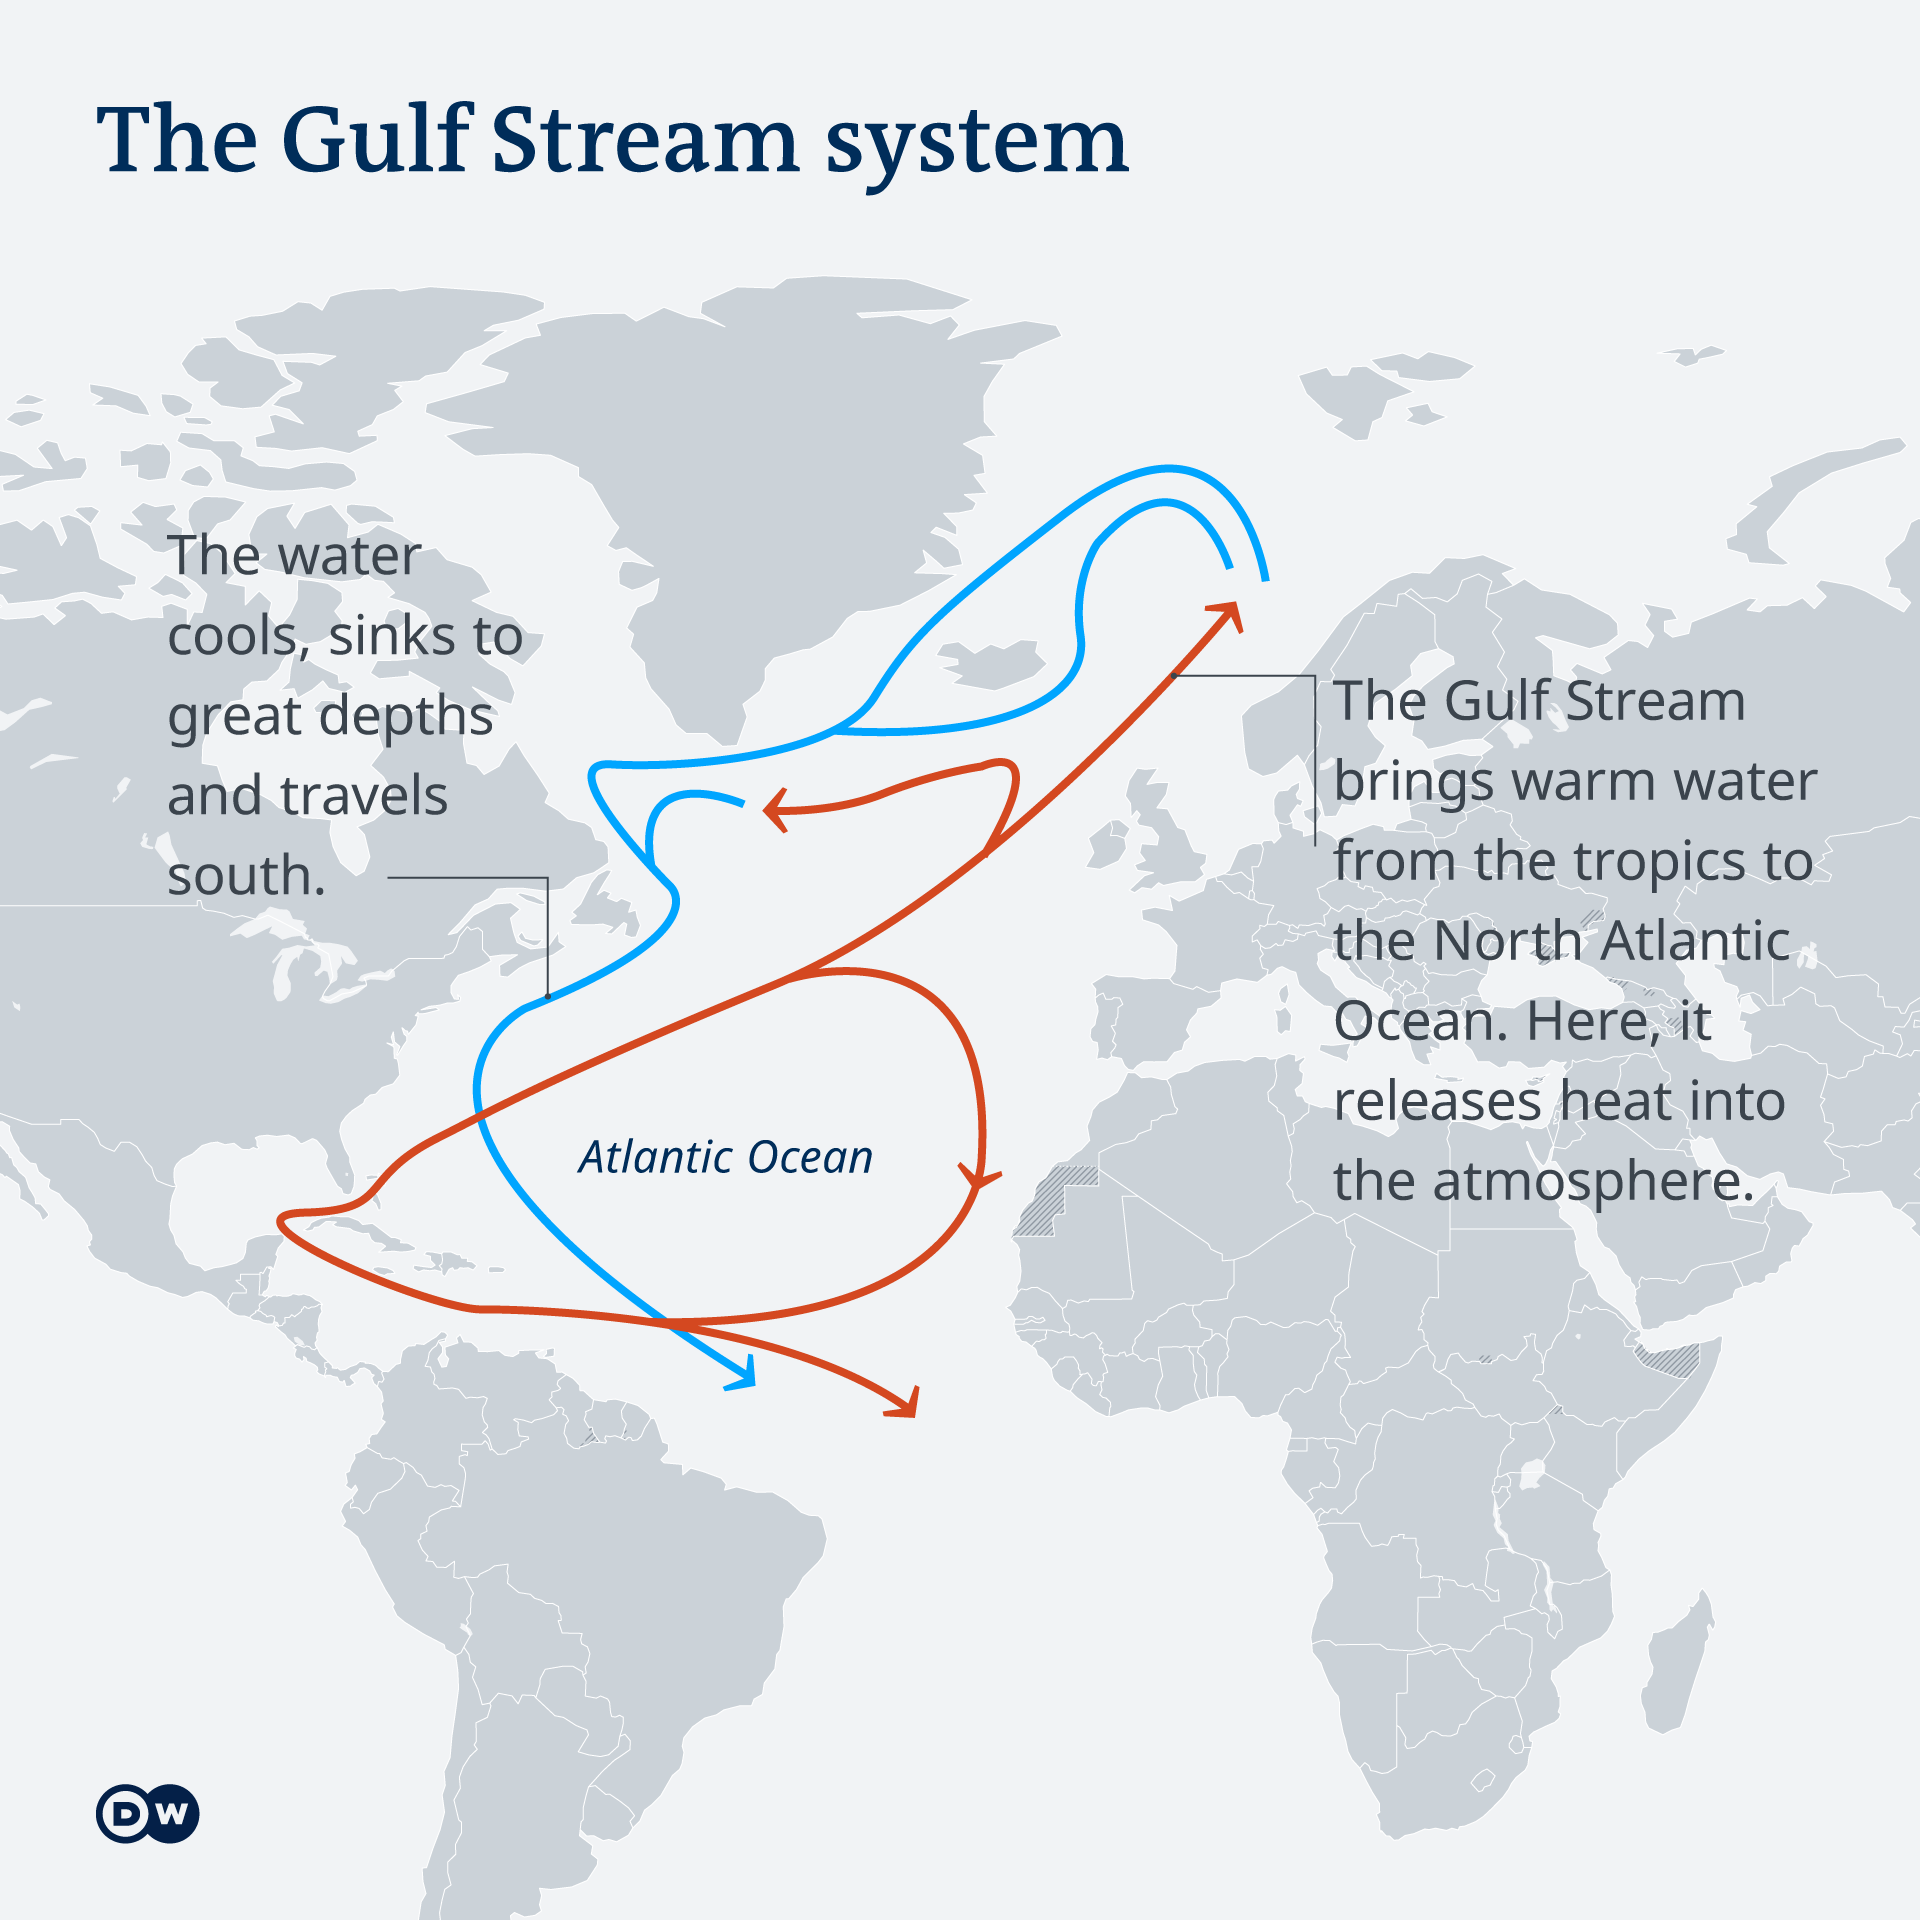 Infographic of the Gulf Stream system